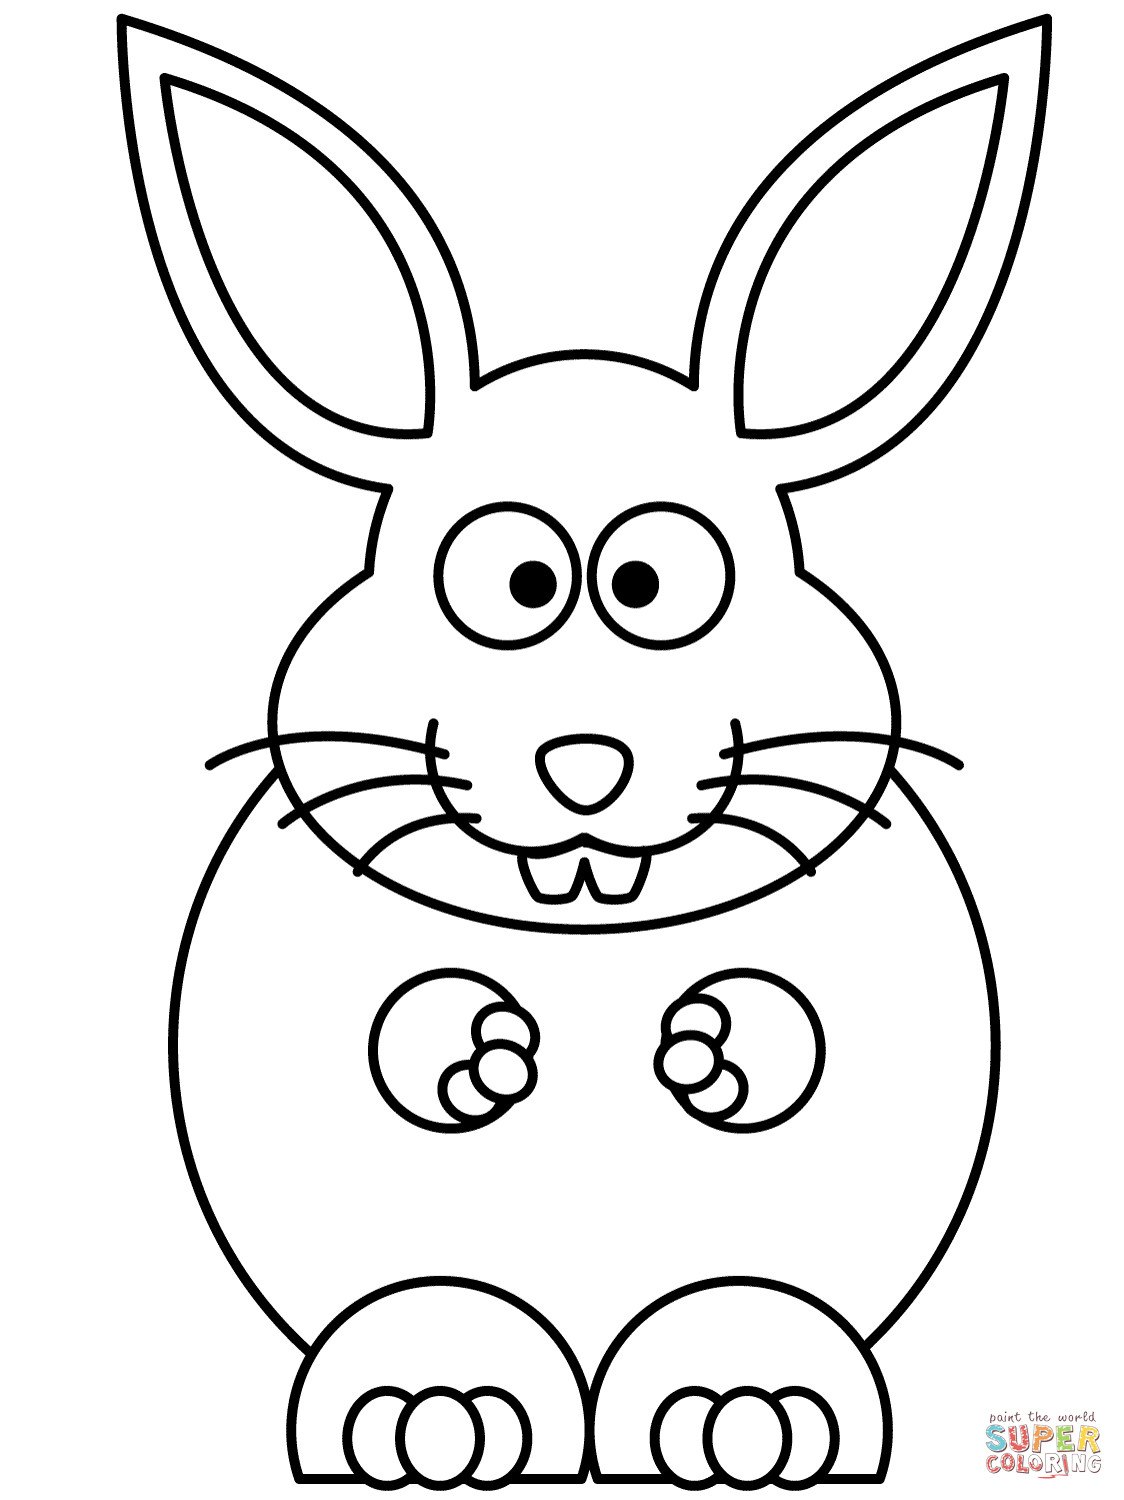 coloring pages of bunny rabbits free printable rabbit coloring pages for kids pages bunny coloring rabbits of